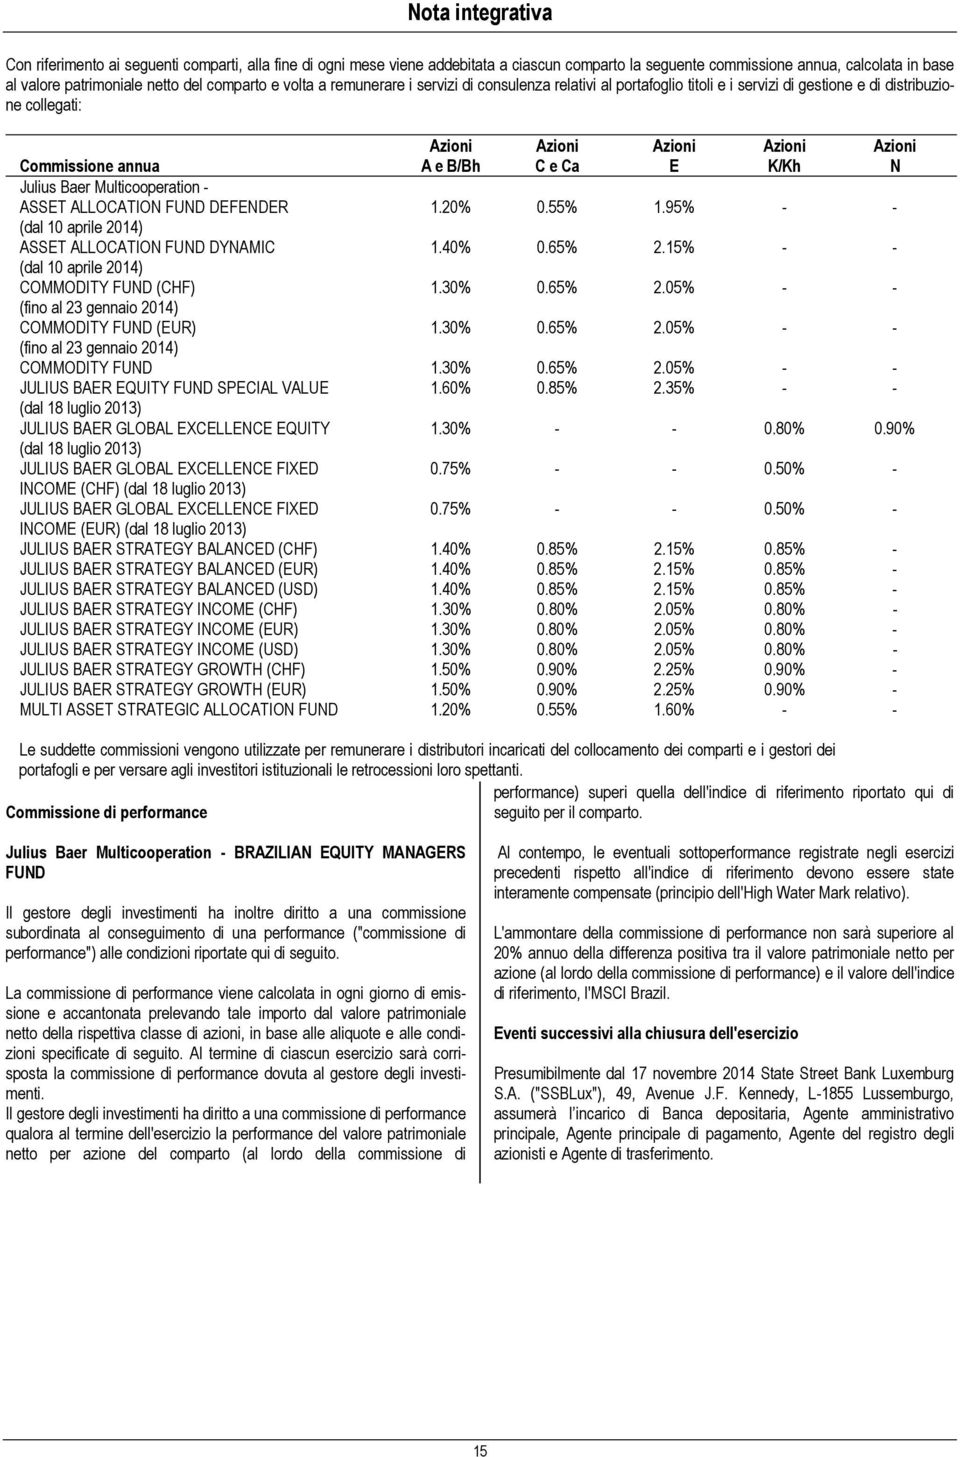 Azioni N Julius Baer Multicooperation - ASSET ALLOCATION FUND DEFENDER 1.20% 0.55% 1.95% - - (dal 10 aprile 2014) ASSET ALLOCATION FUND DYNAMIC 1.40% 0.65% 2.